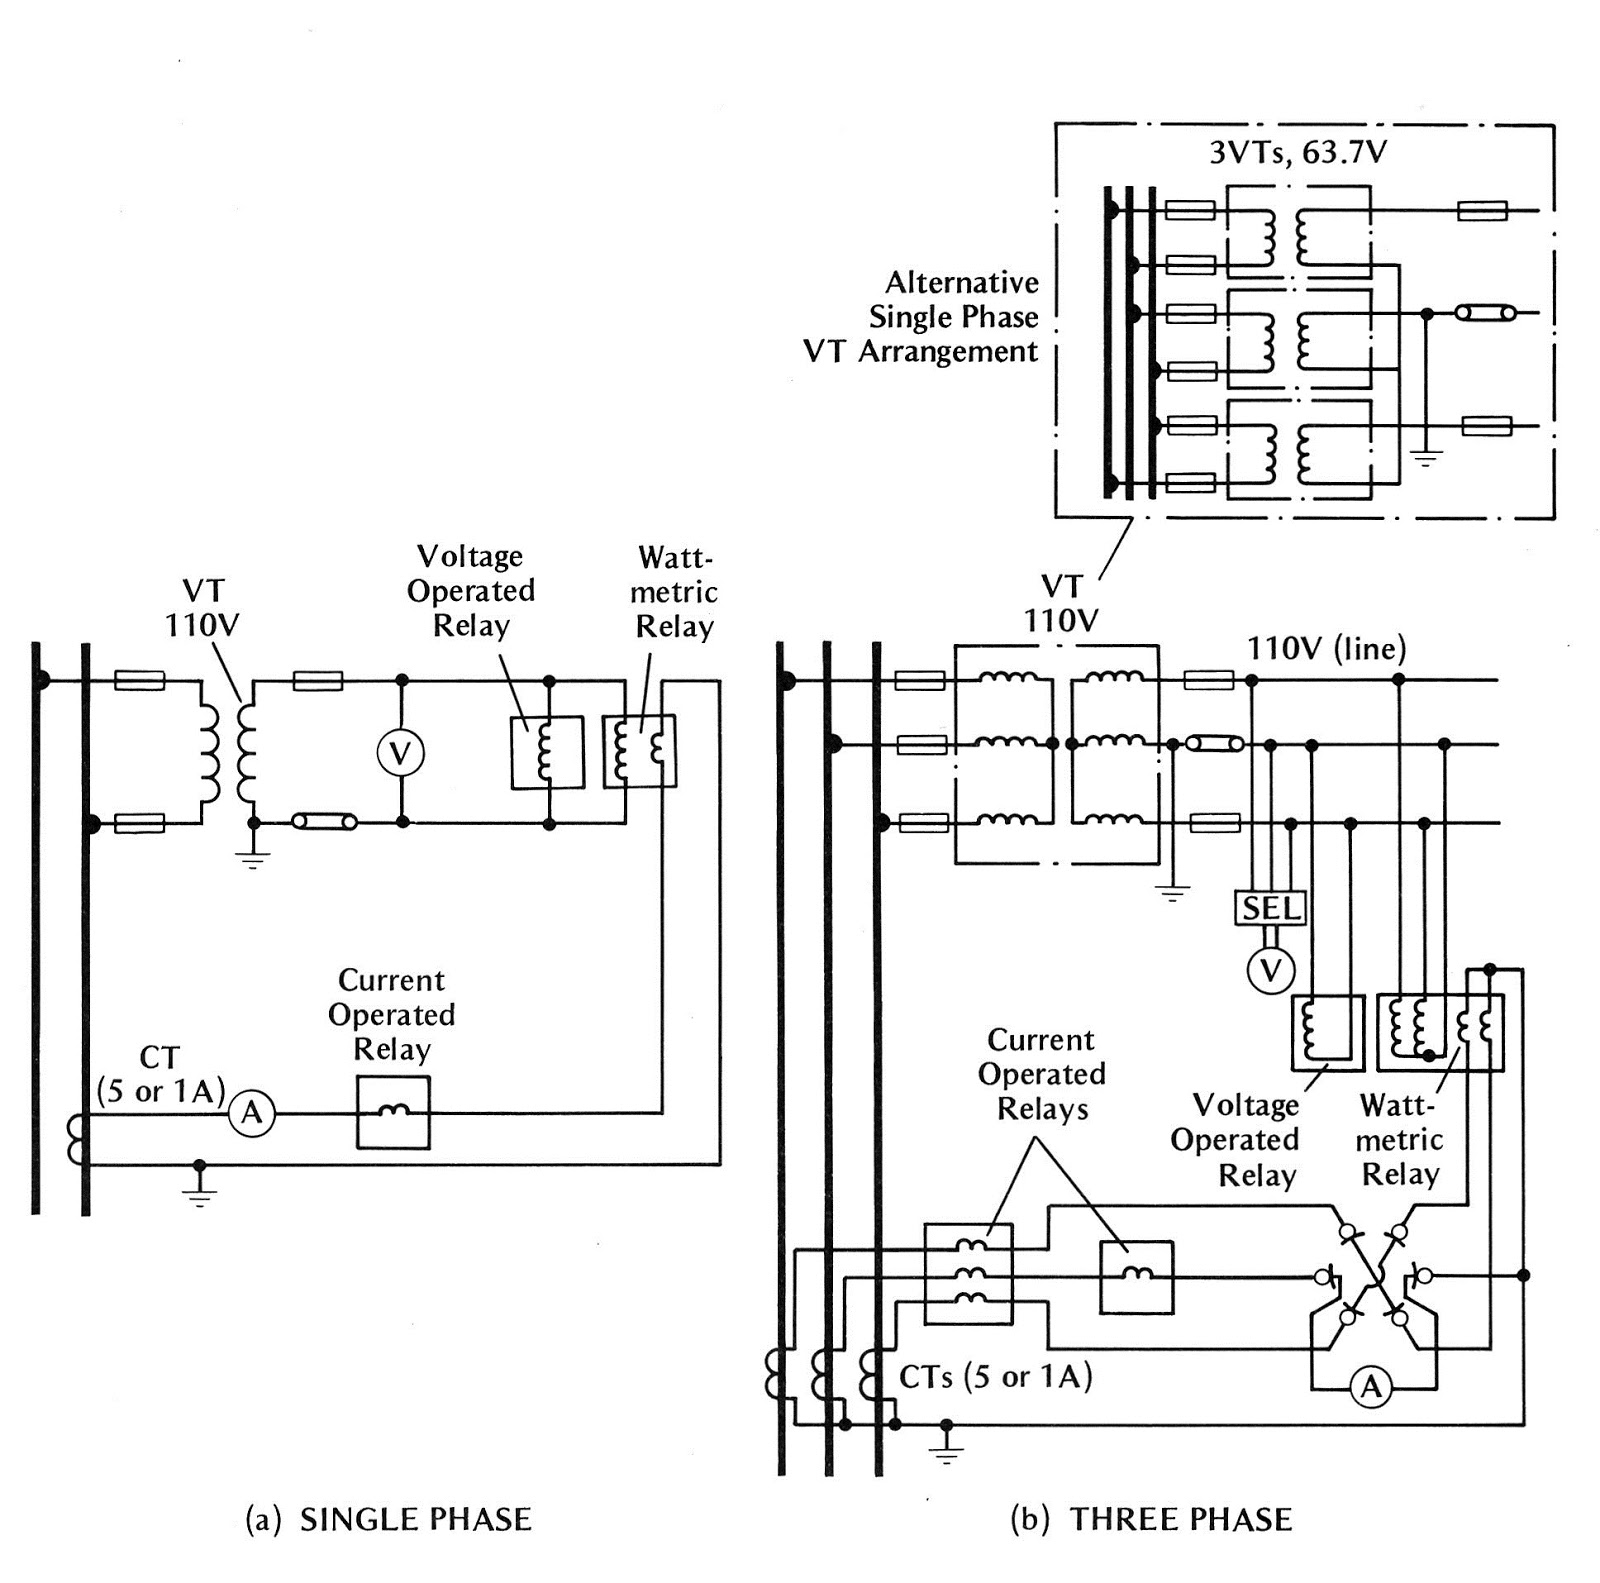 3 phase ammeter selector switch wiring diagram gooseneck trailer engineering photos videos and articels search